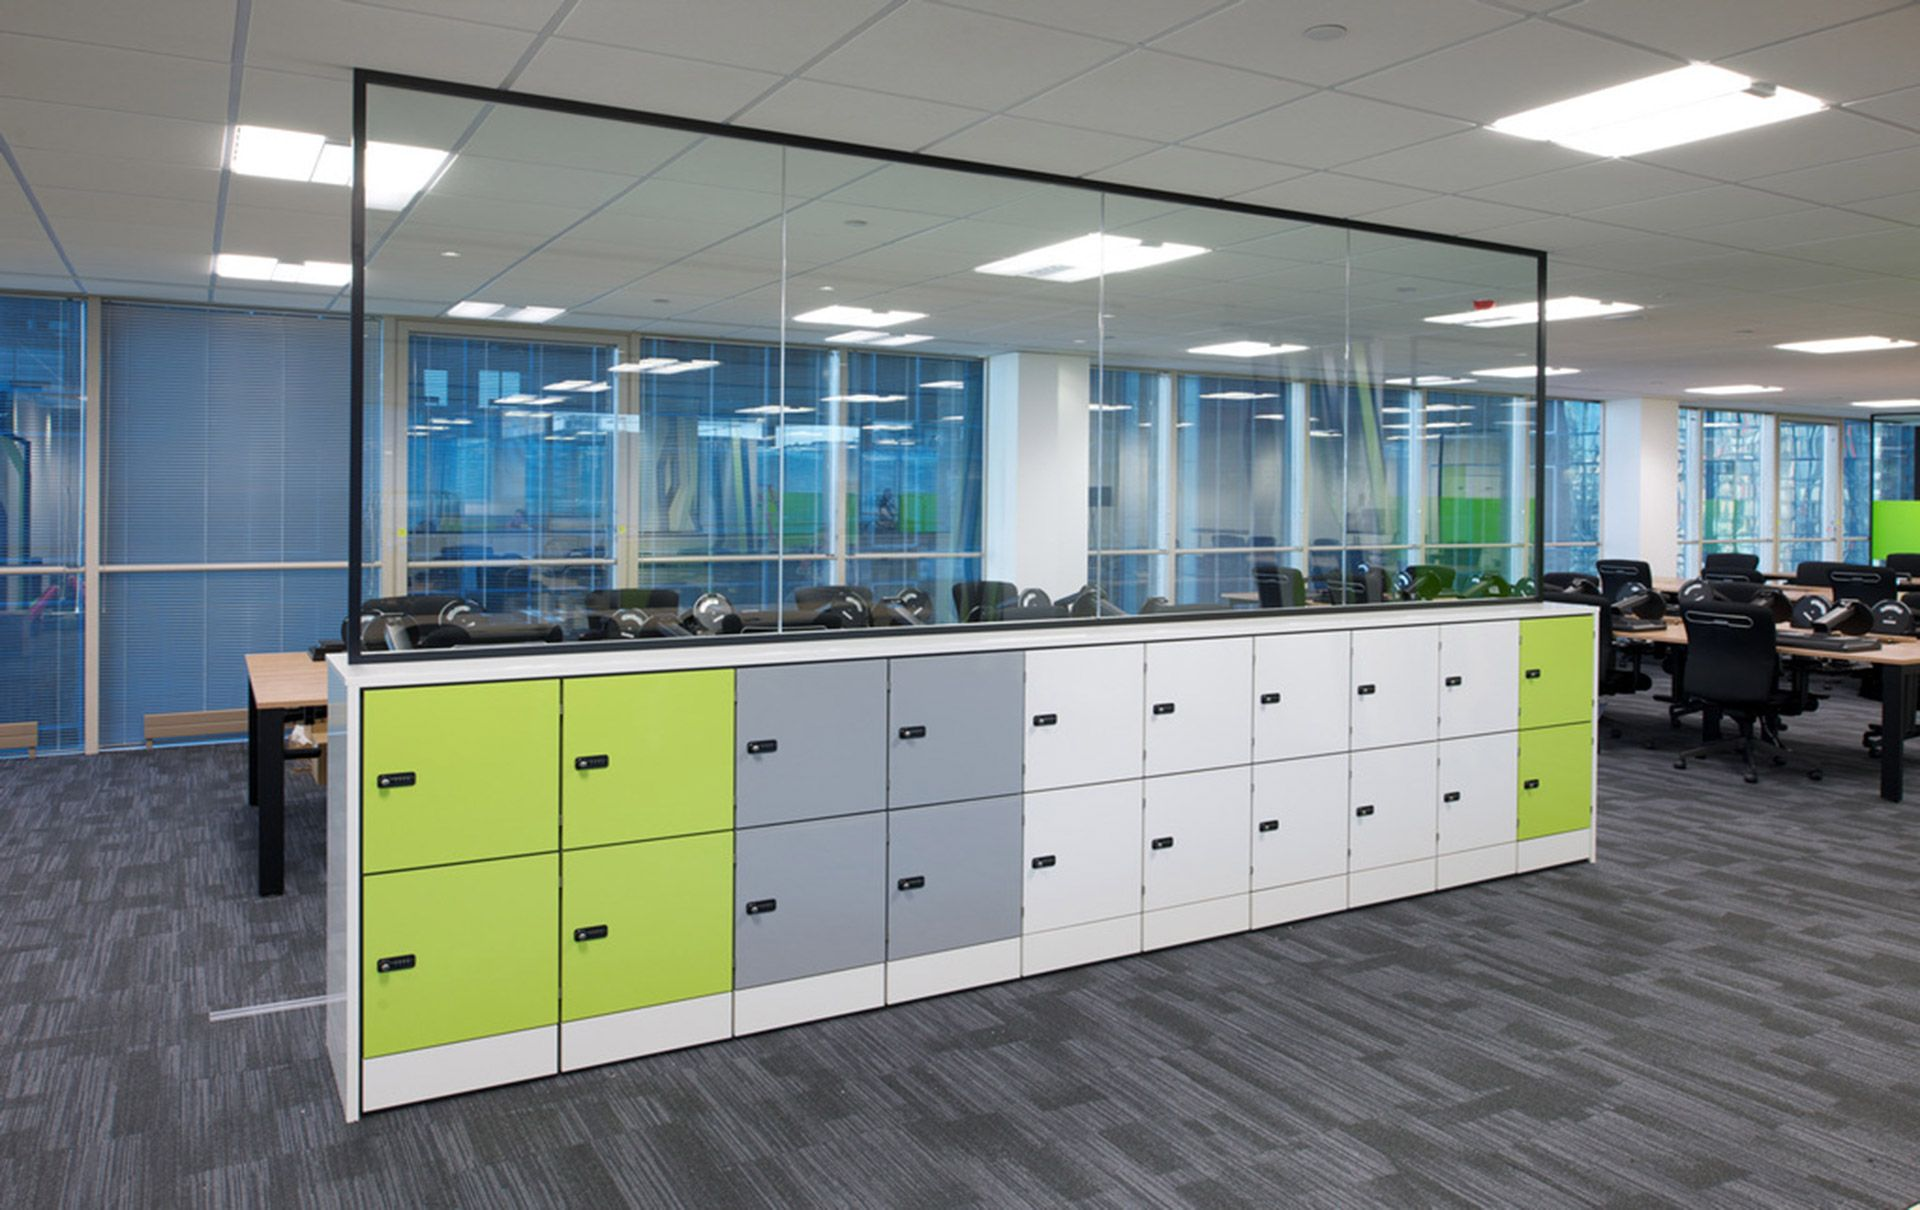 personal office design. HotLocker Personal Storage Offers Flexible, Secure And Various Sized Office Lockers For Hot Desking Agile Working Environments. Design